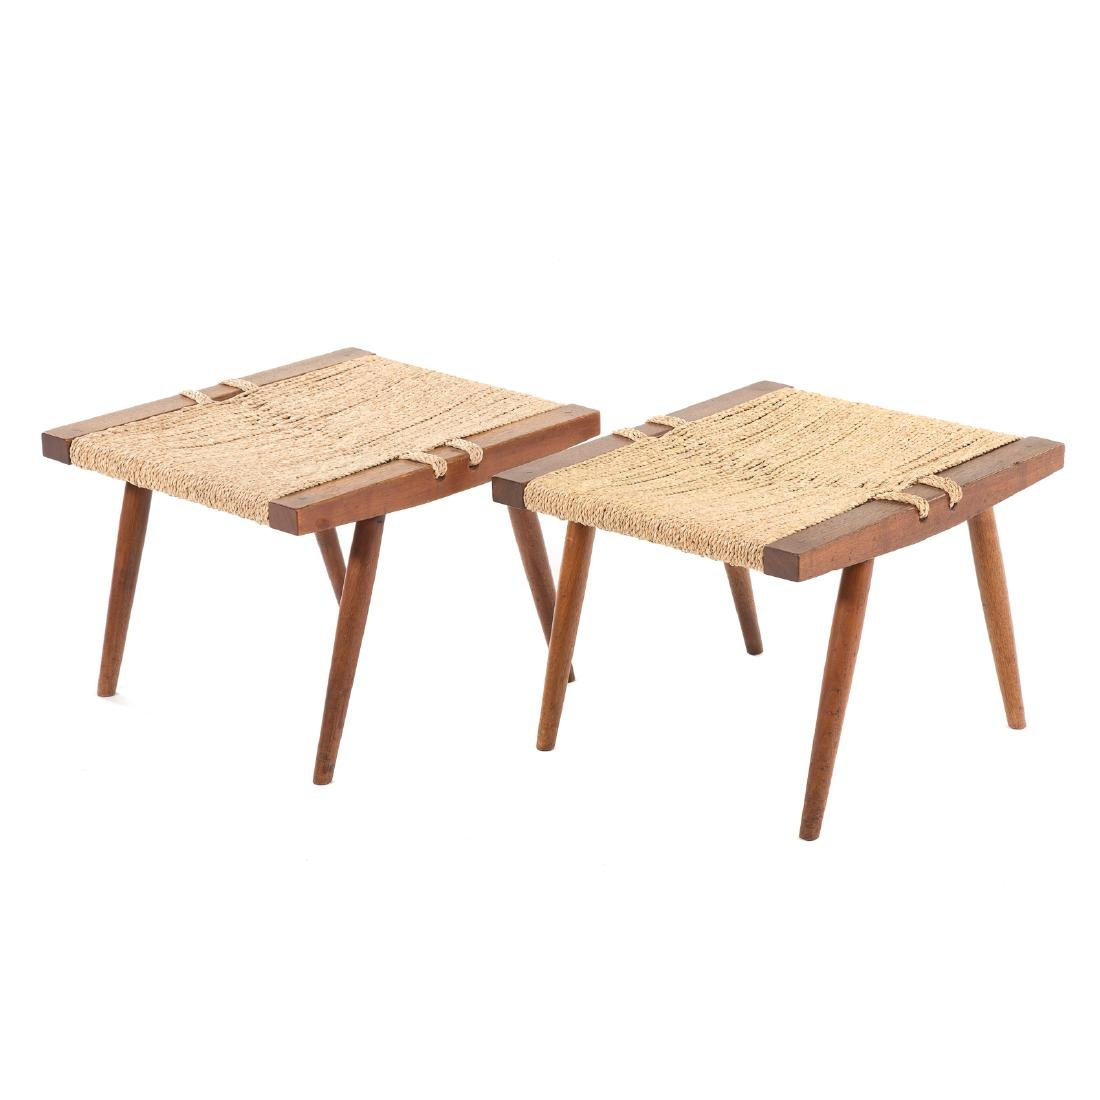 Pair of George Nakashima Grass Seated Stools - 2